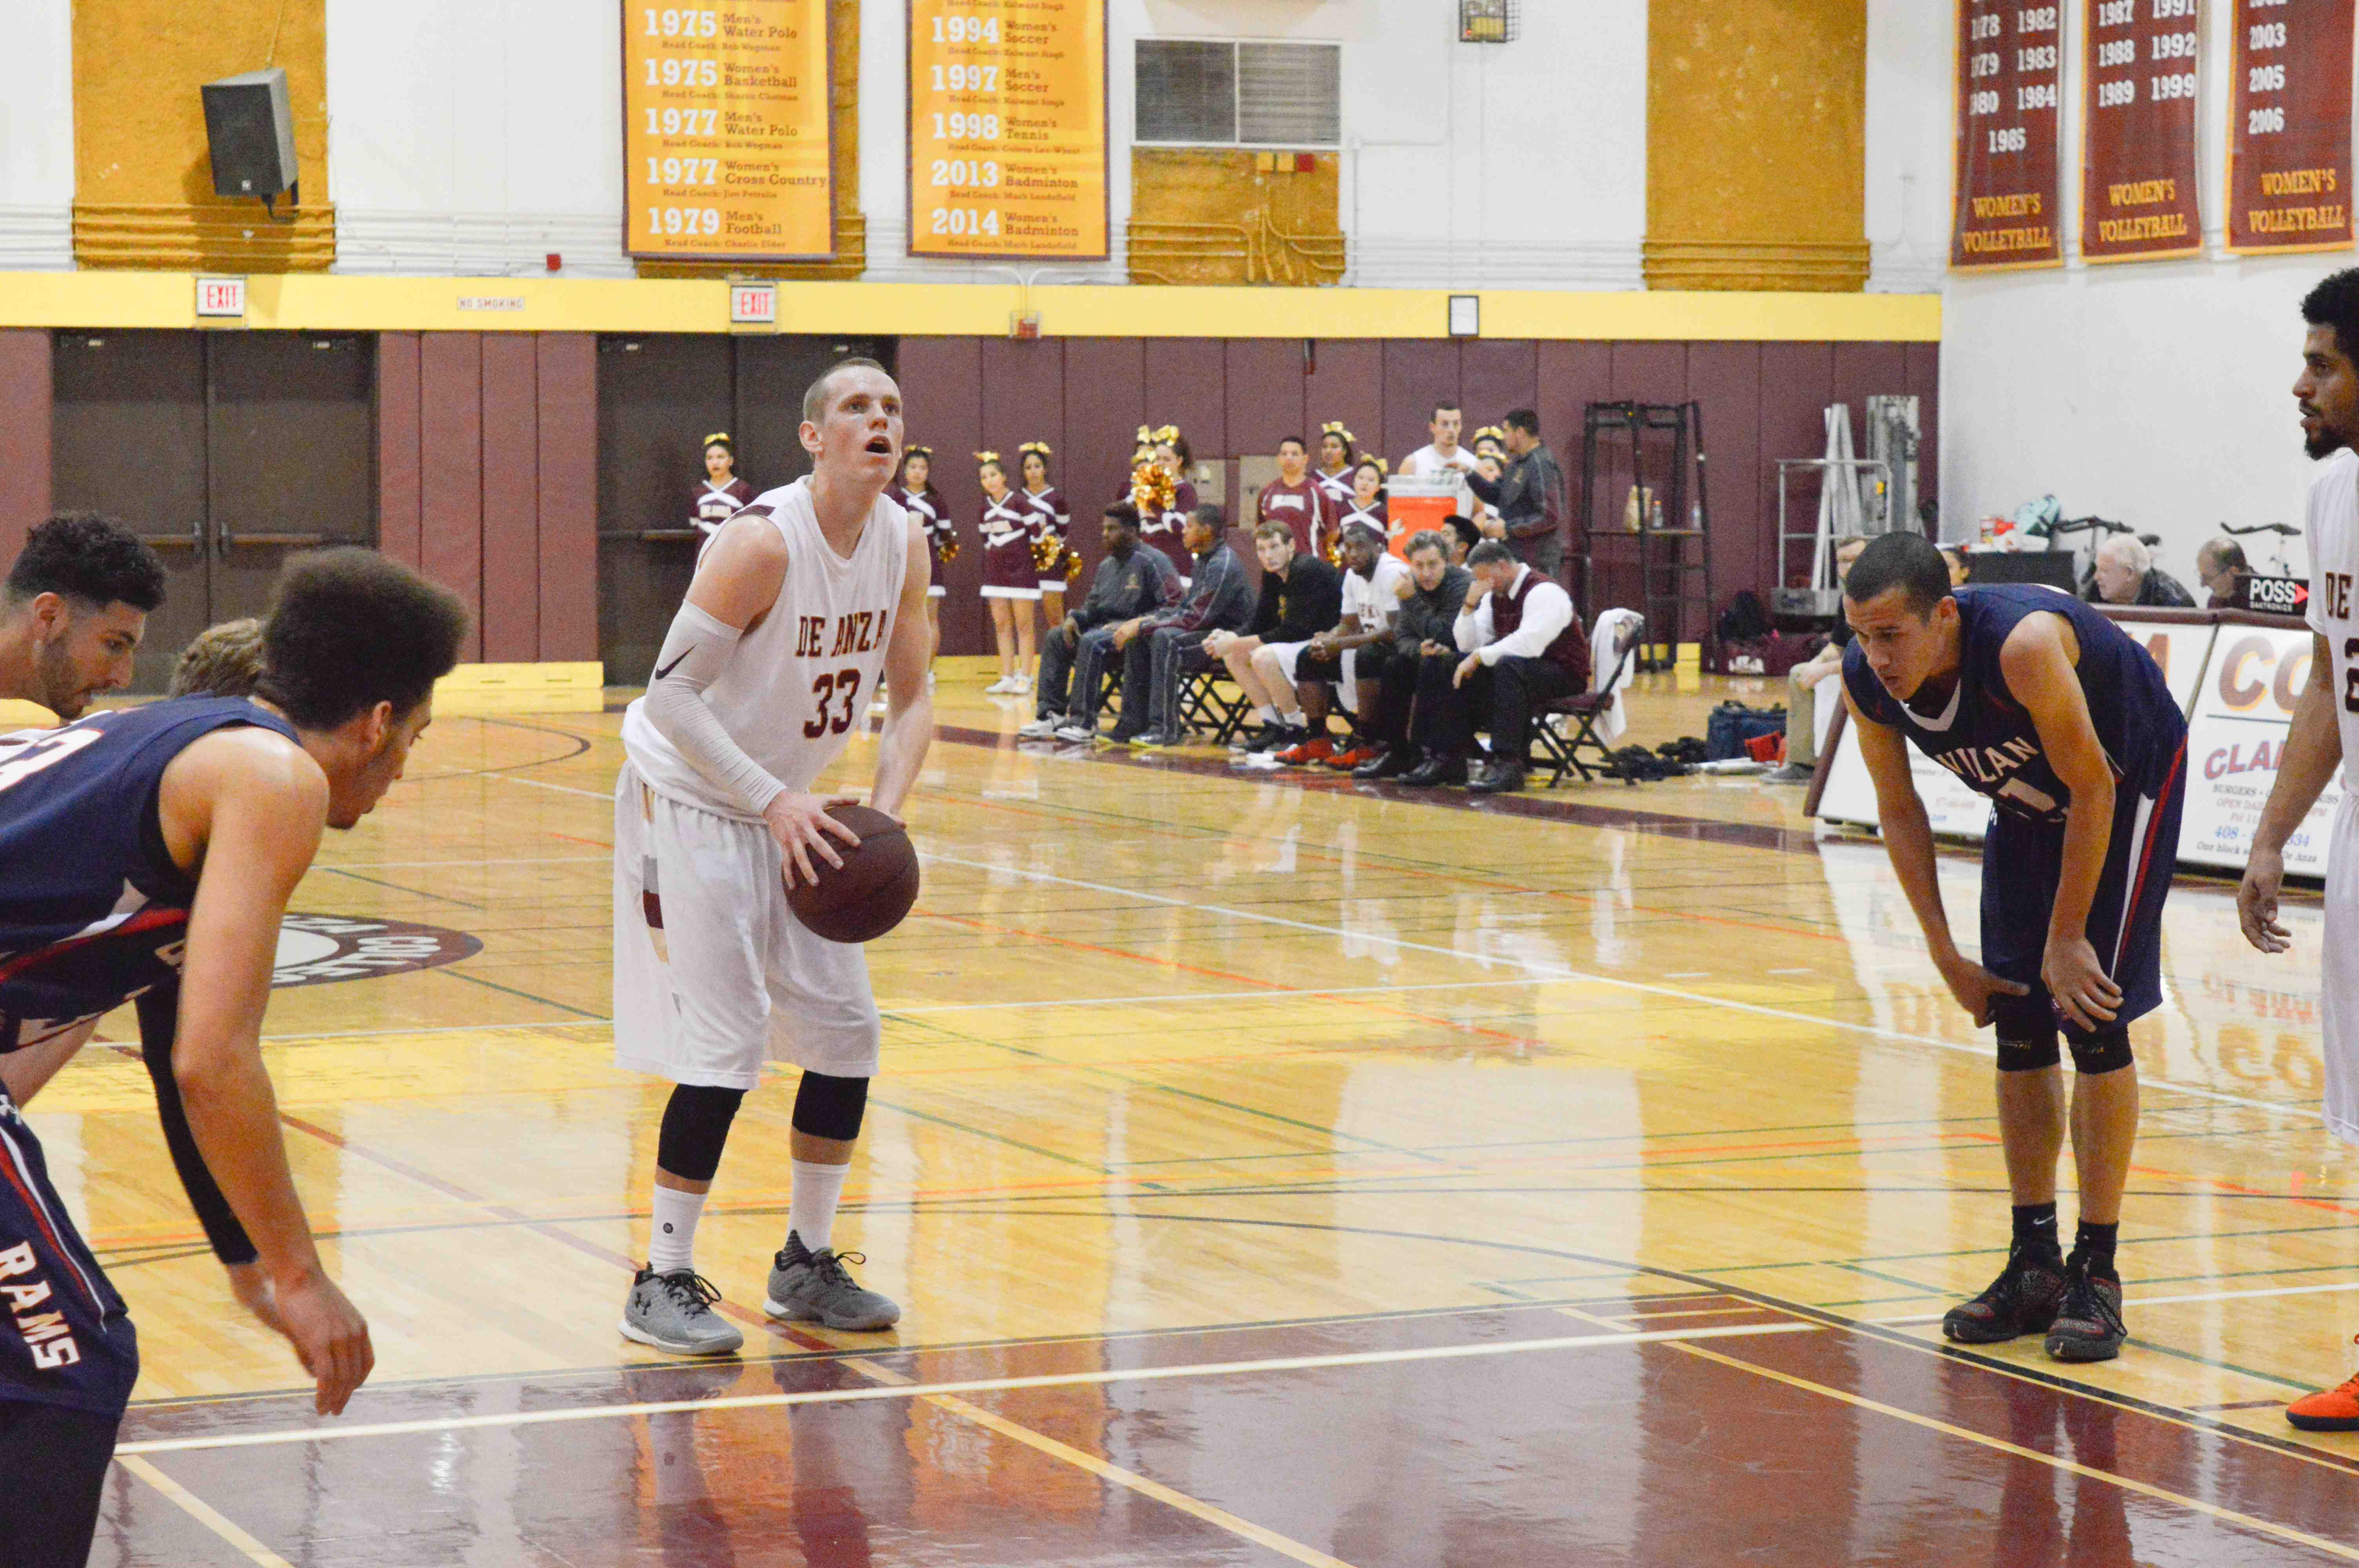 Cooper Wilson (33), wing, sets for a free throw in a game against Gavilan College that came down to the wire on Friday, Jan. 15.